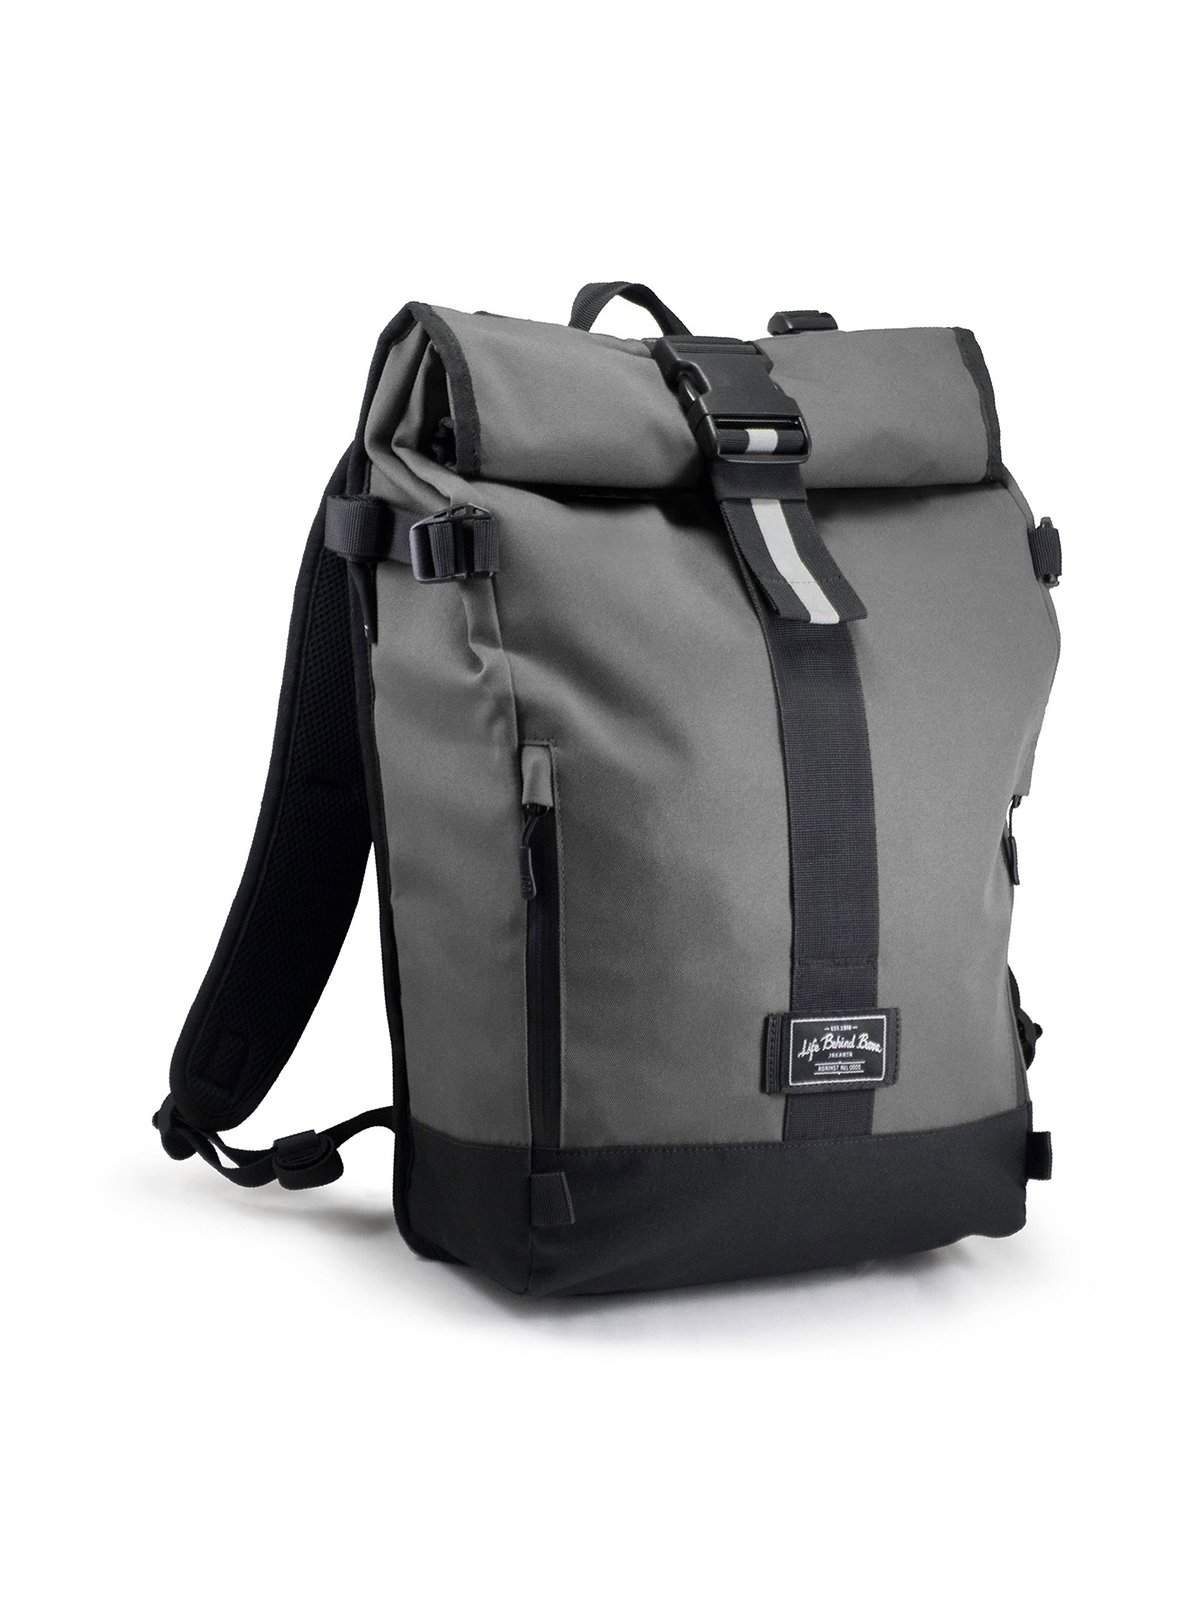 598af4f2ffd6 Life Behind Bars The Breakaway 27L Backpack Grey - MORE by Morello -  Indonesia